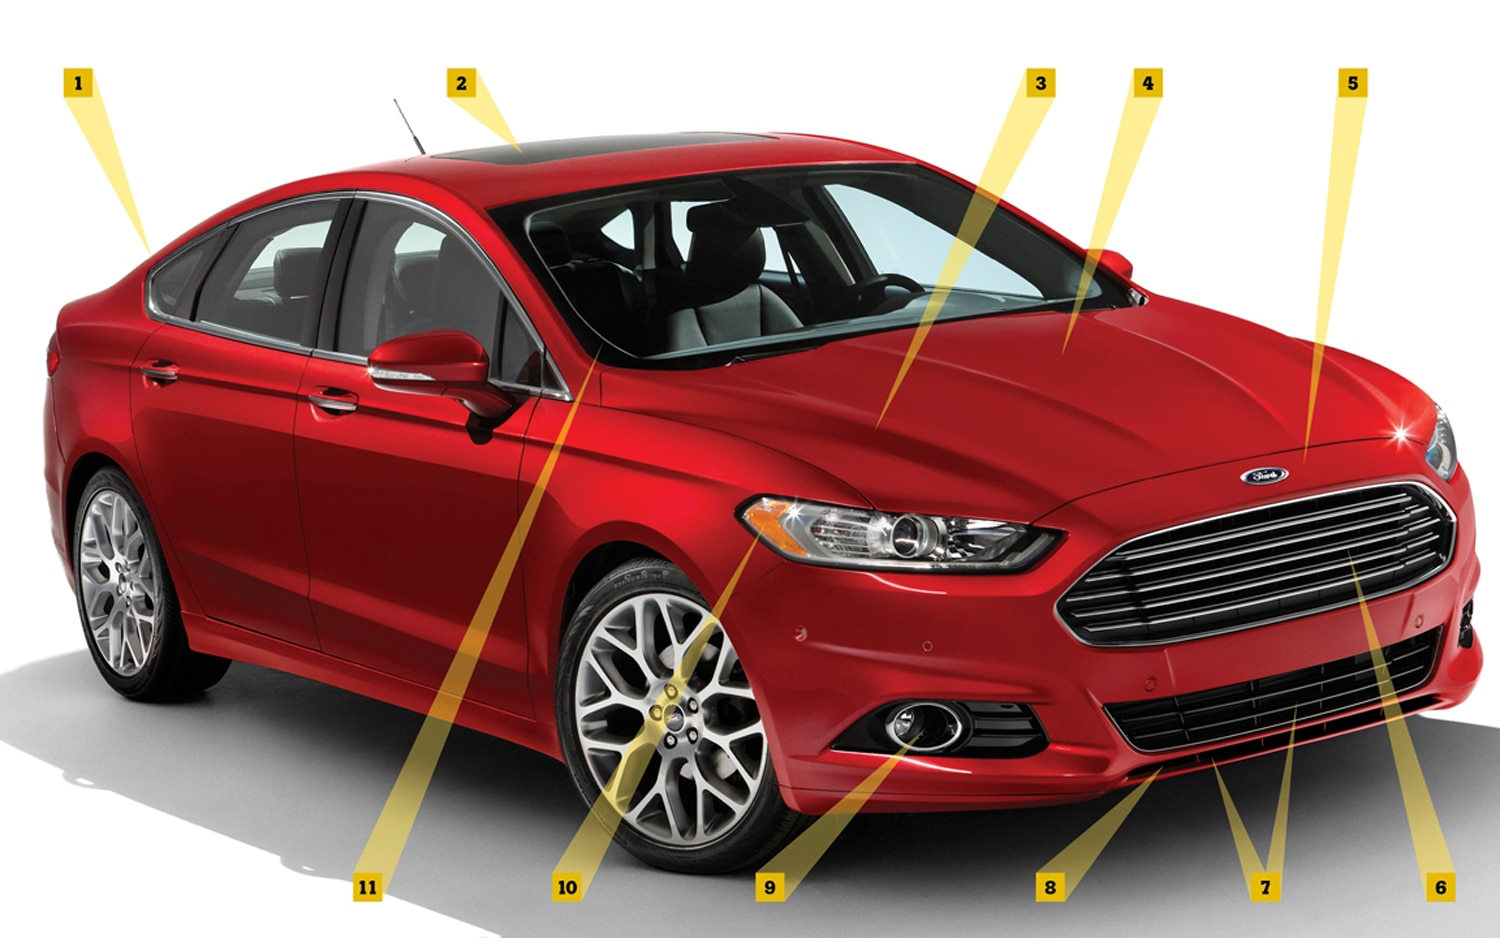 Ford Fusion Front View1